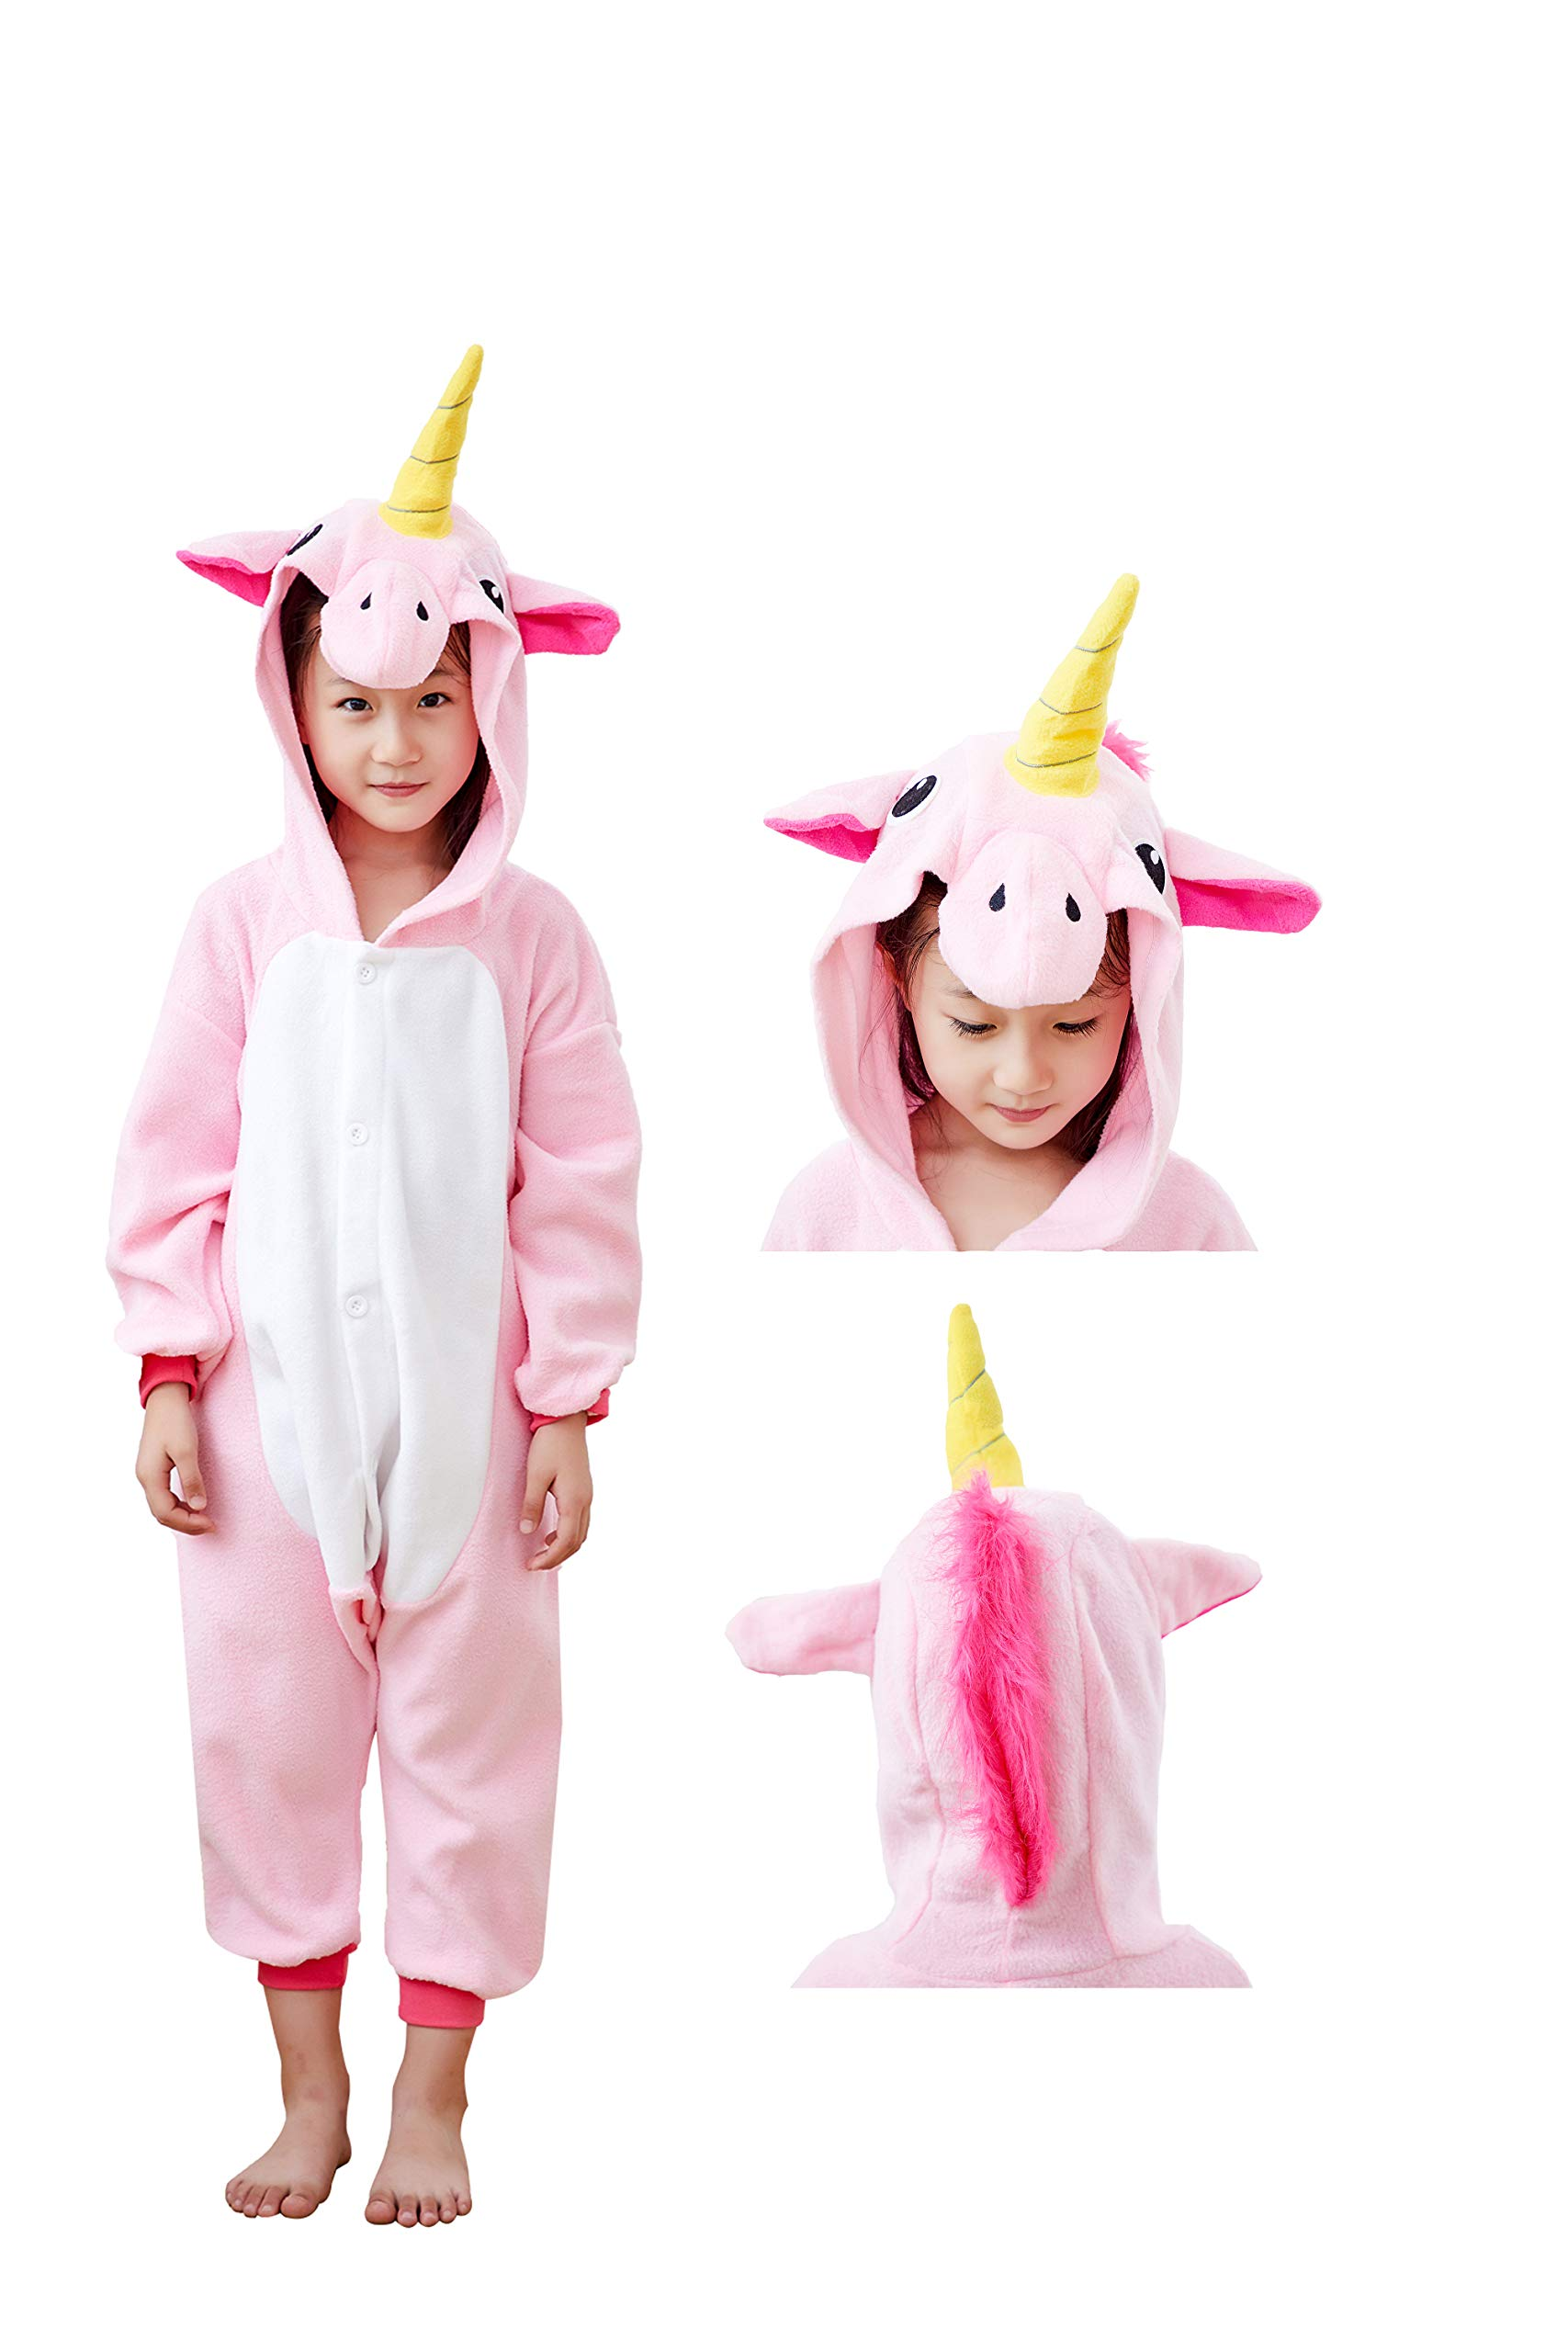 Mybei Unisex Kids Unicorn Onesie Cosplay Pajamas,Fleece One Piece Animal Costume for Boys Girls 4-6